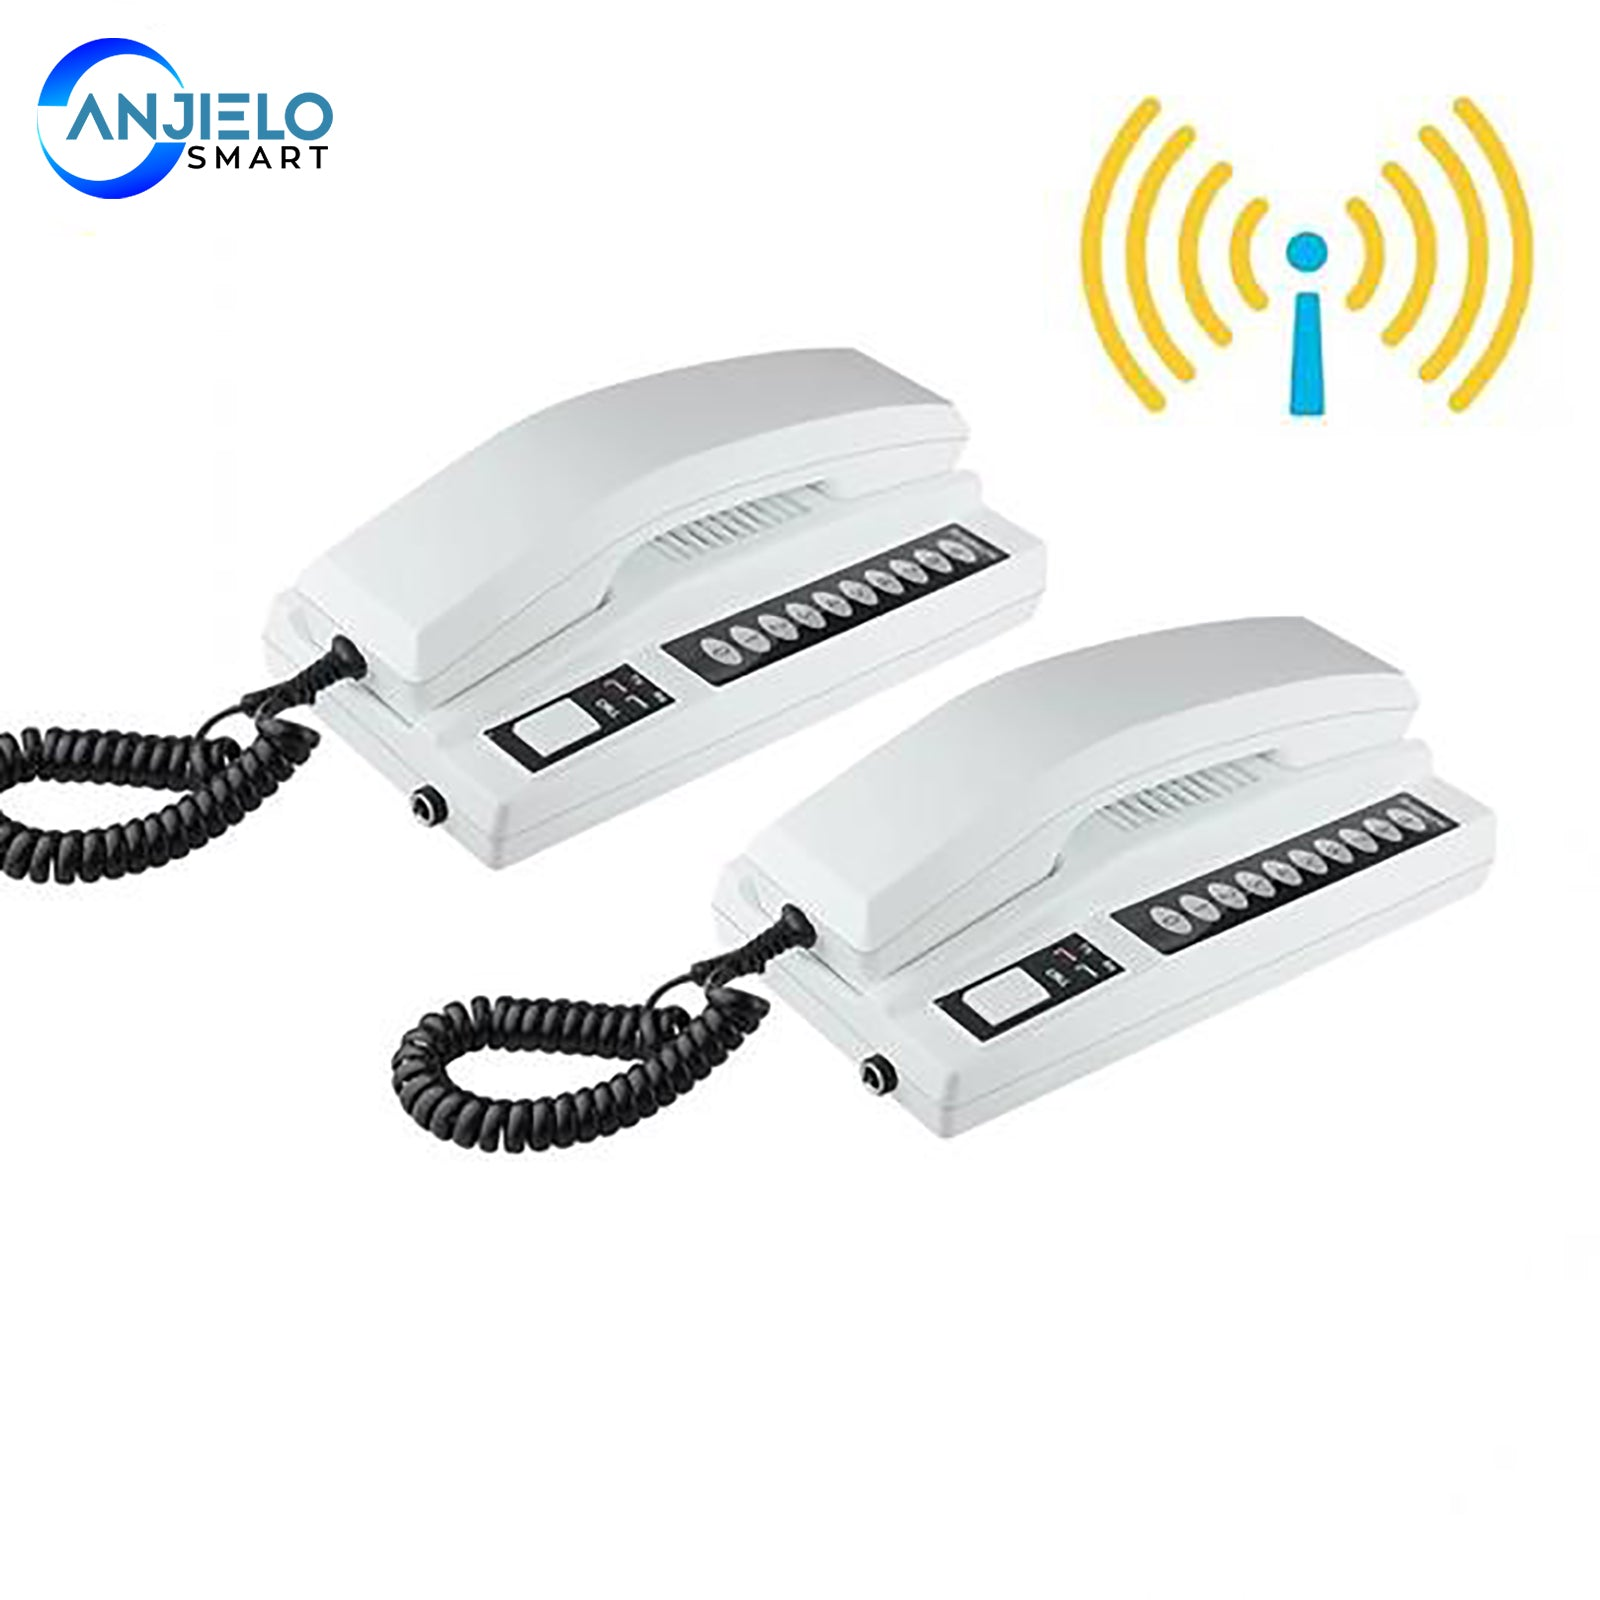 AnjieloSmart New Wireless 2.4GHz 433MHz Recharged Audio Intercom System Secure Interphone Handsets